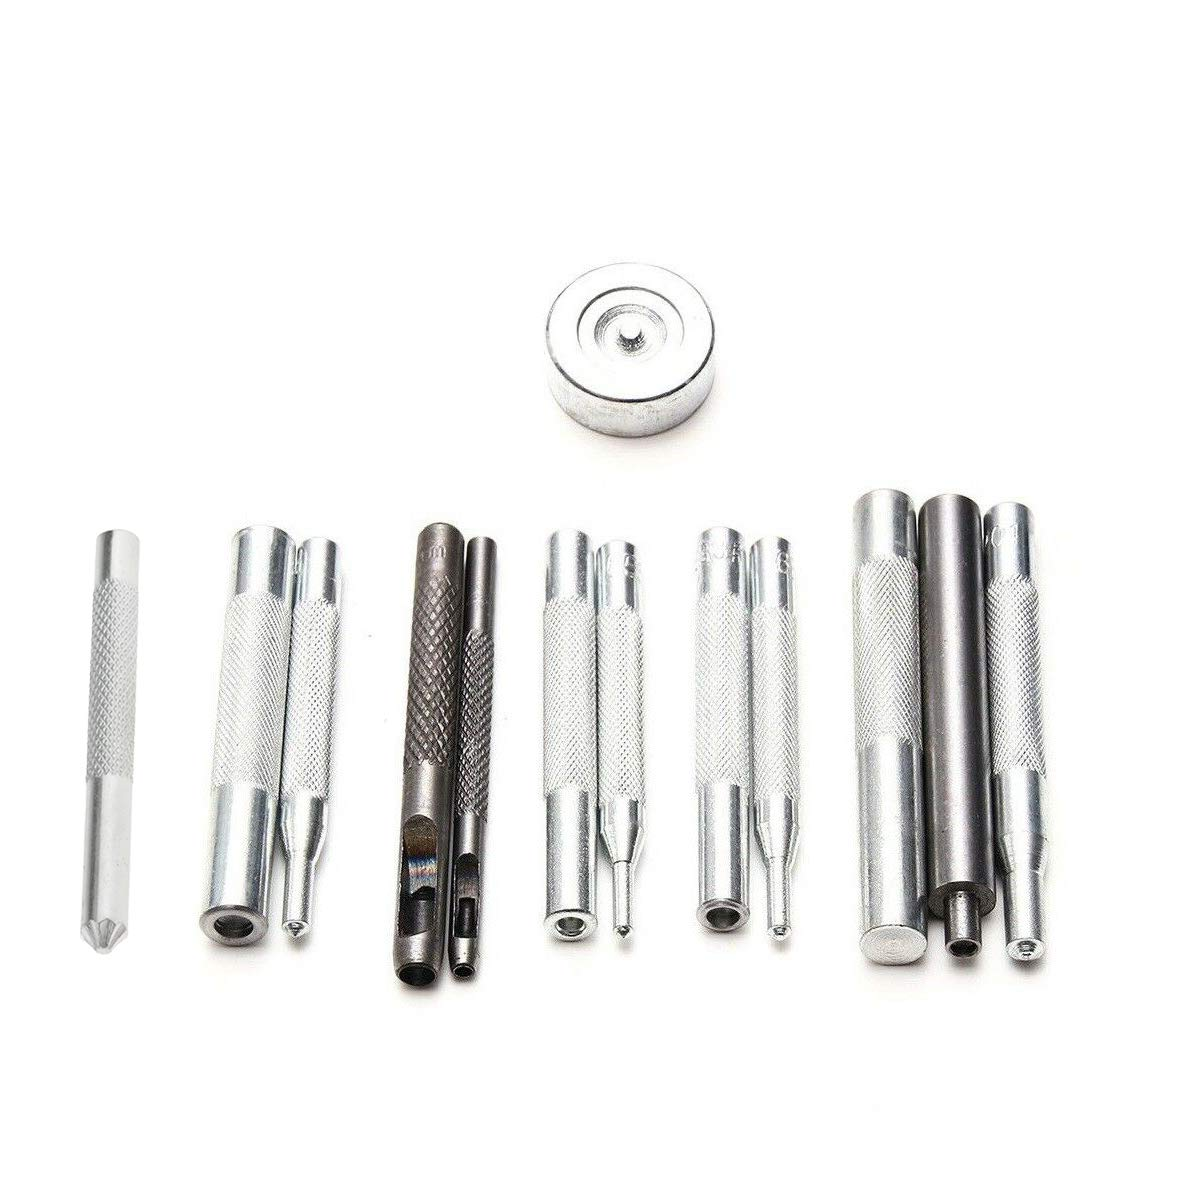 Press Studs Poppers Eyelets Fixing Hand Tool Set Sewing Leather Crafts New